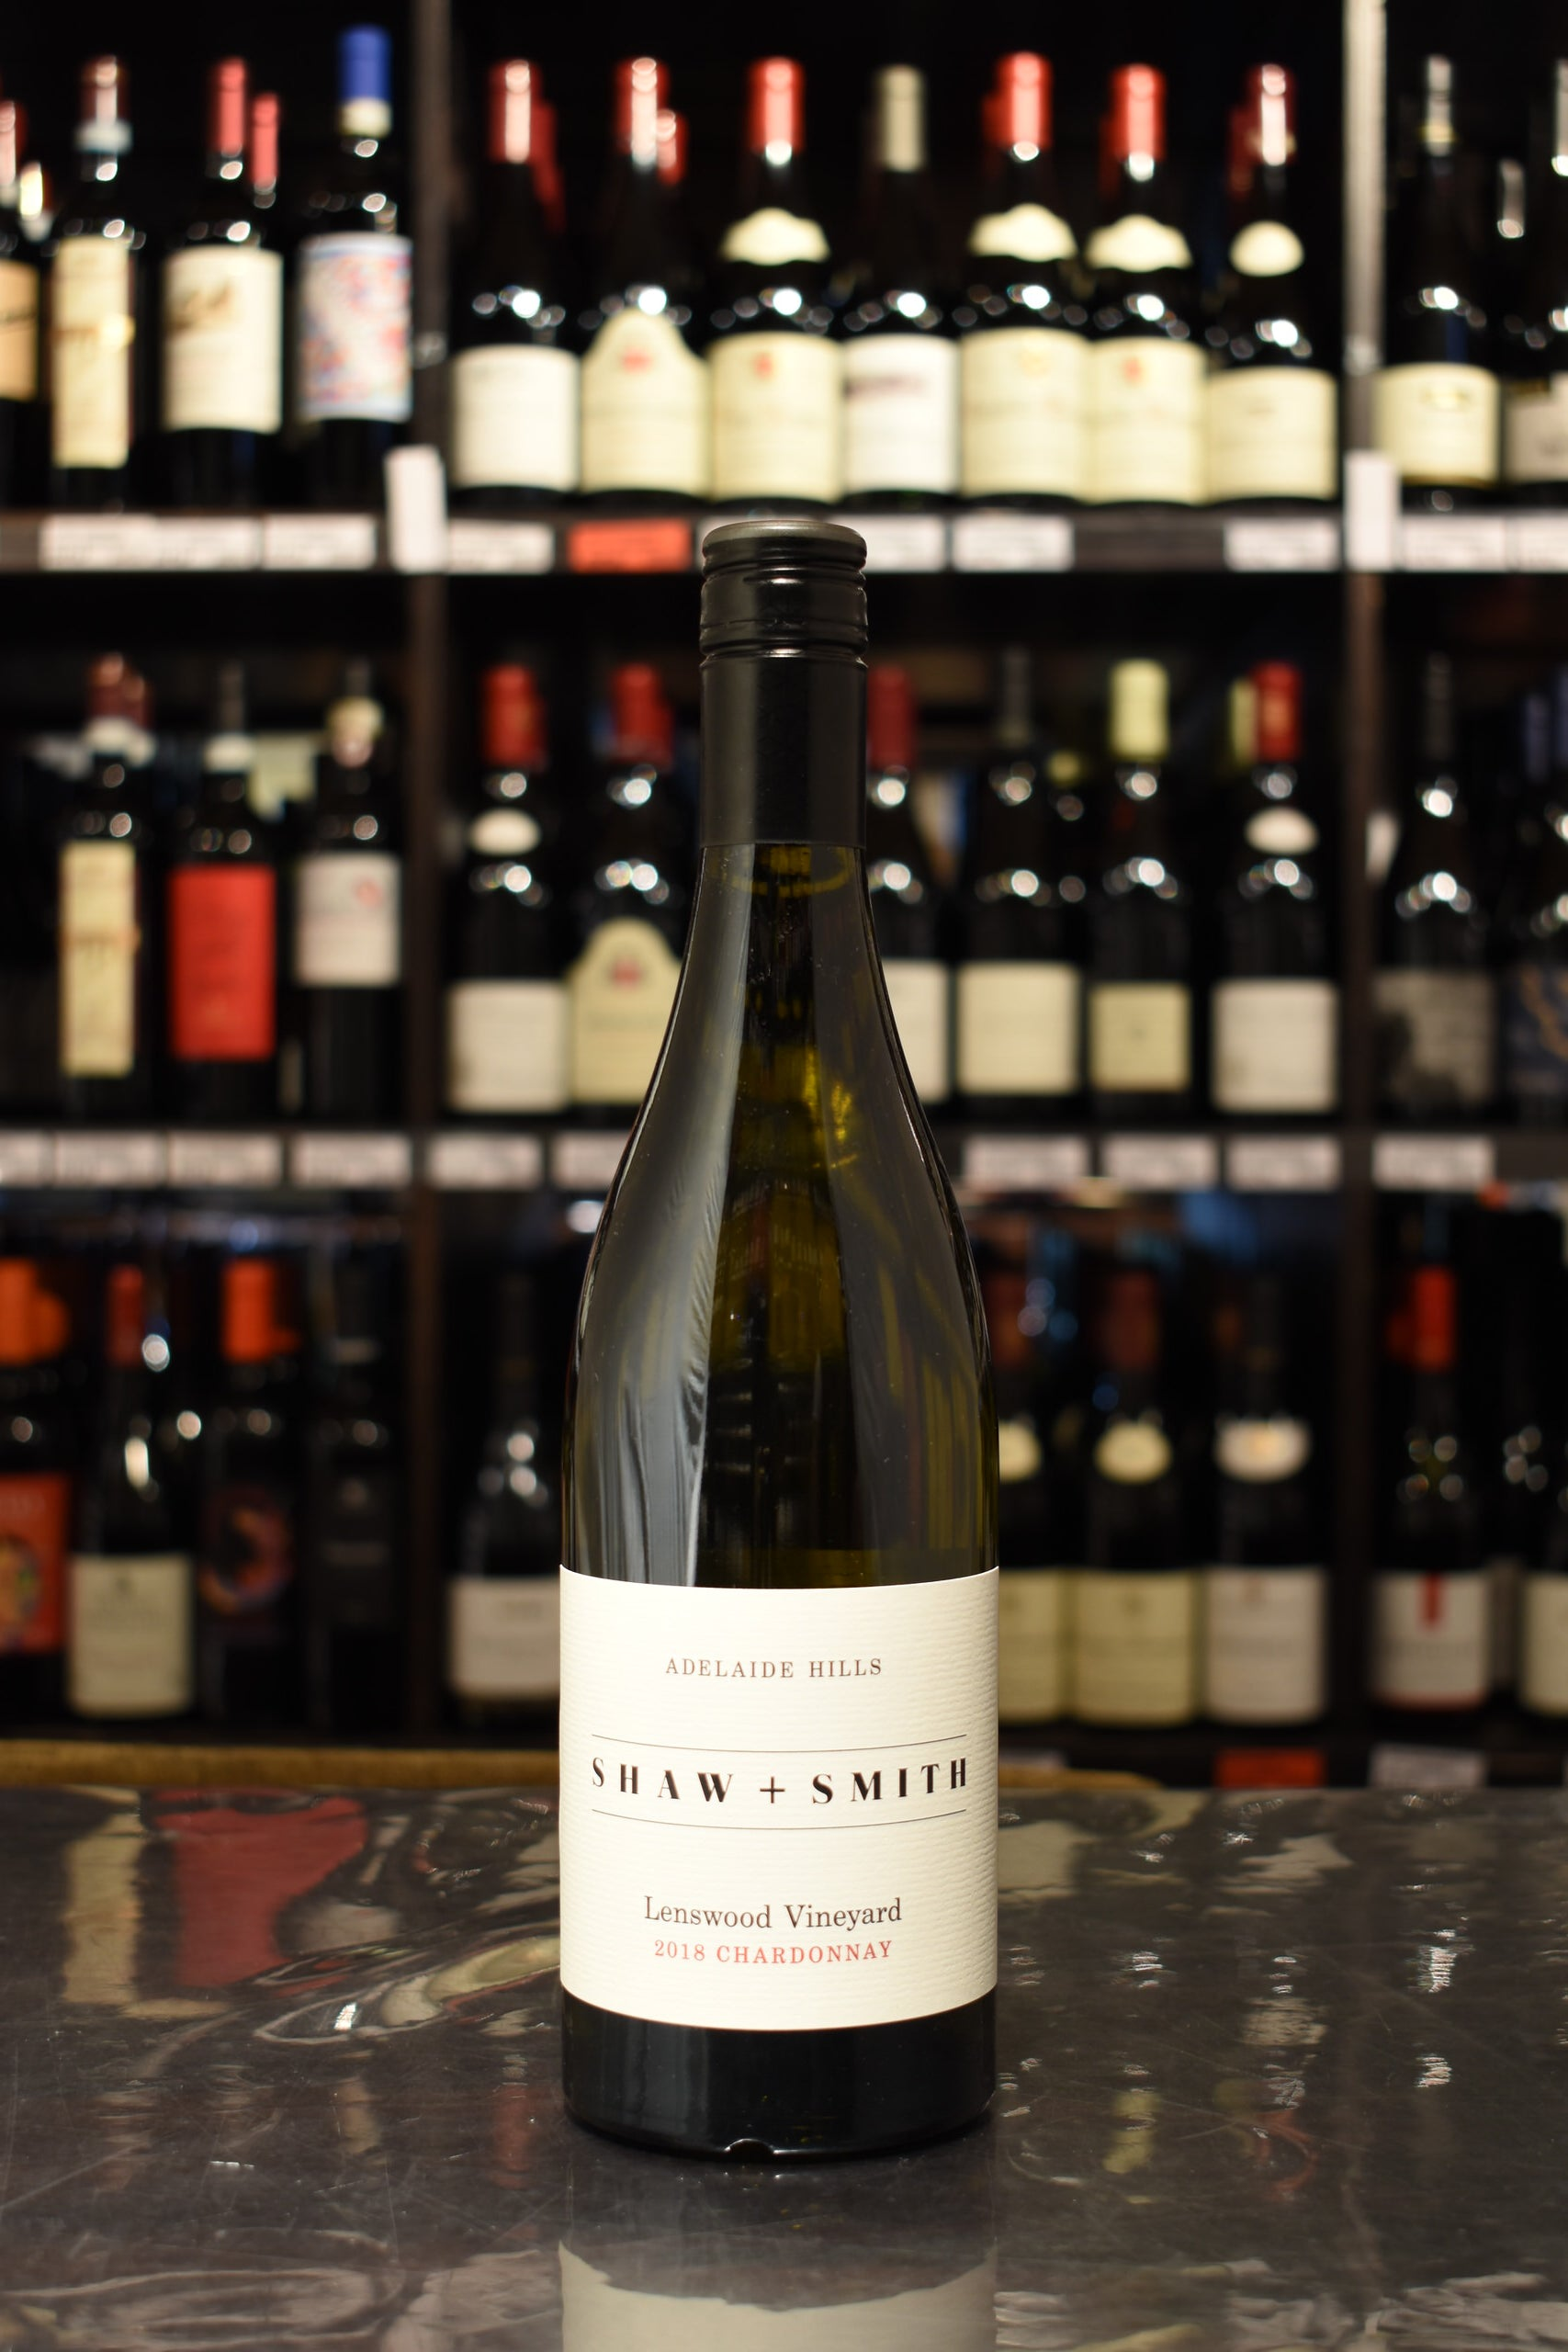 Shaw + Smith 'Lenswood Vineyard' Chardonnay